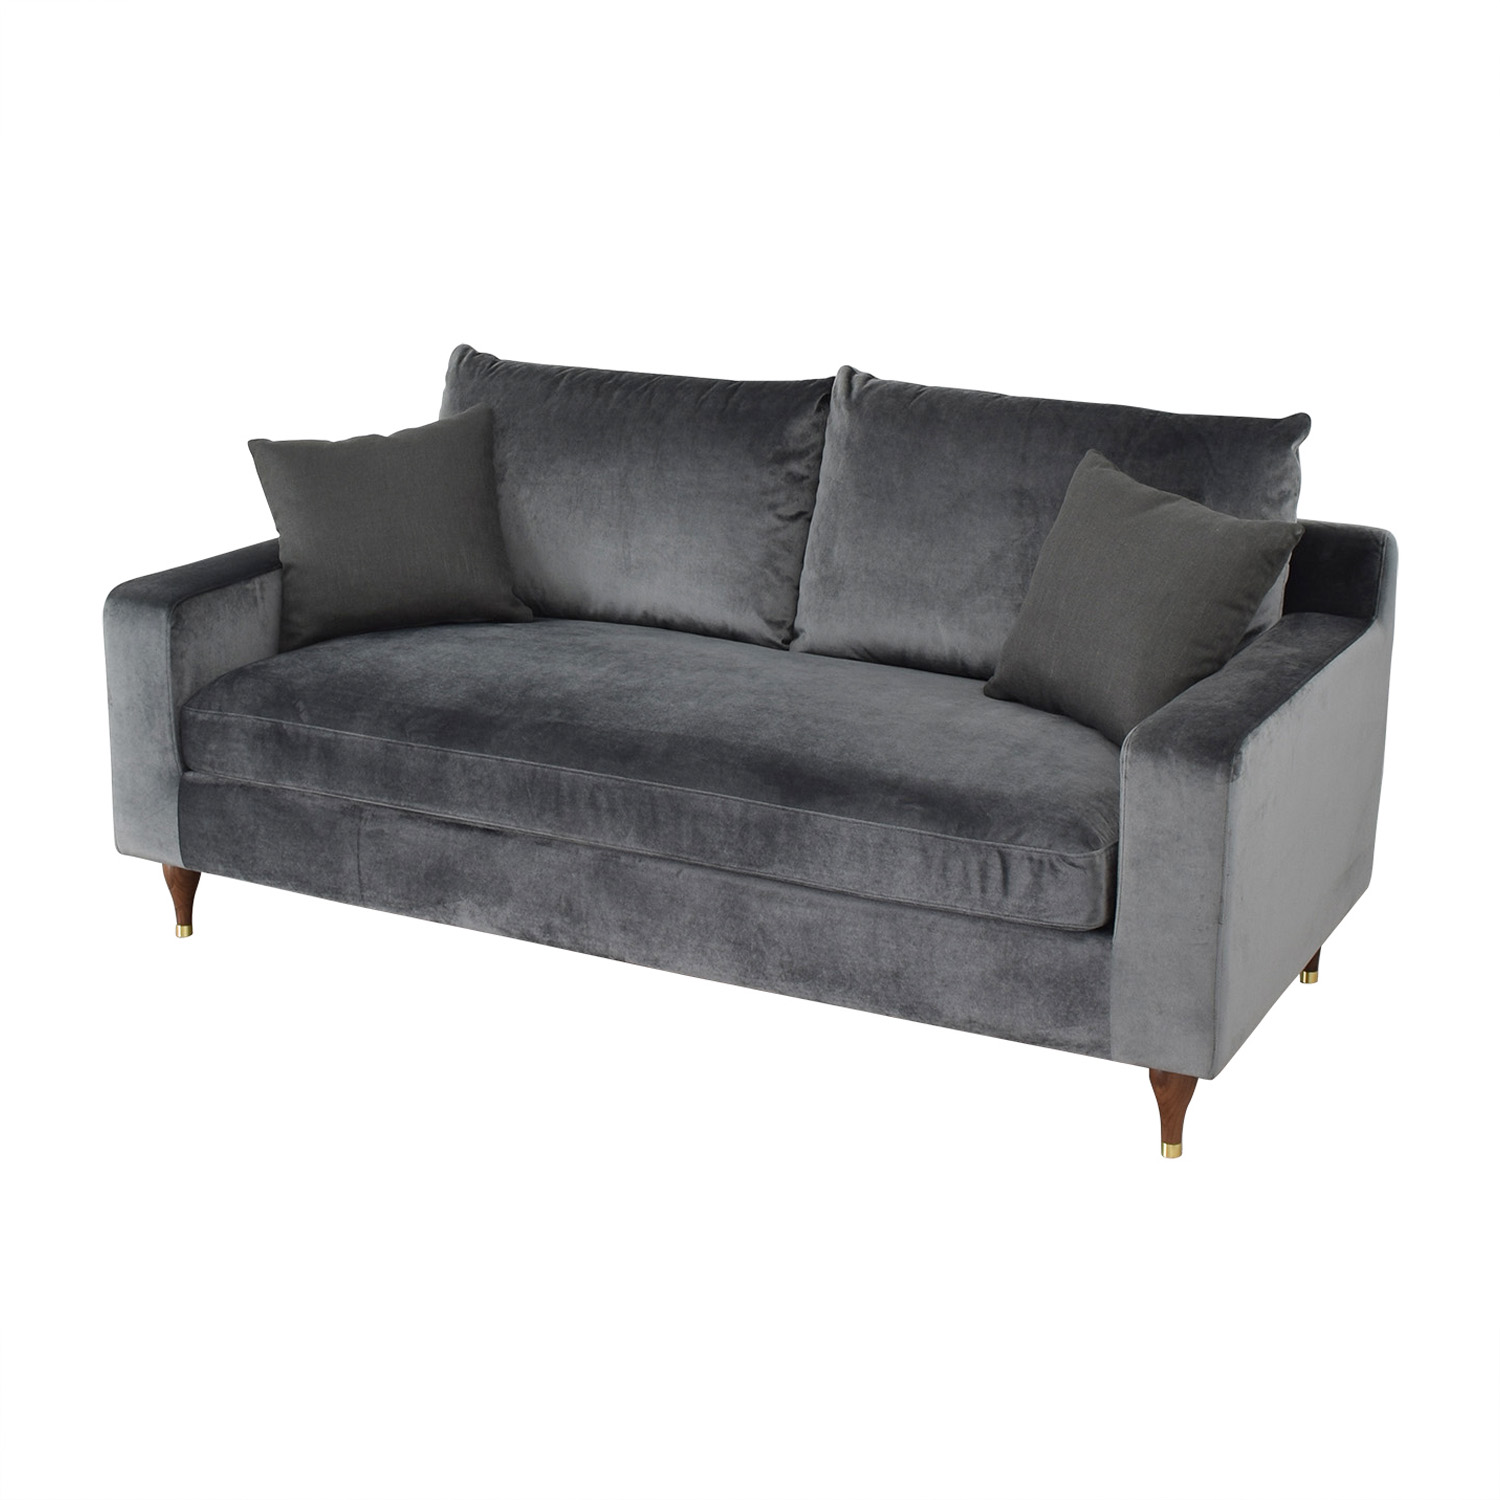 Sloan Mod Velvet Narwhal Single Cushion Sofa / Sofas